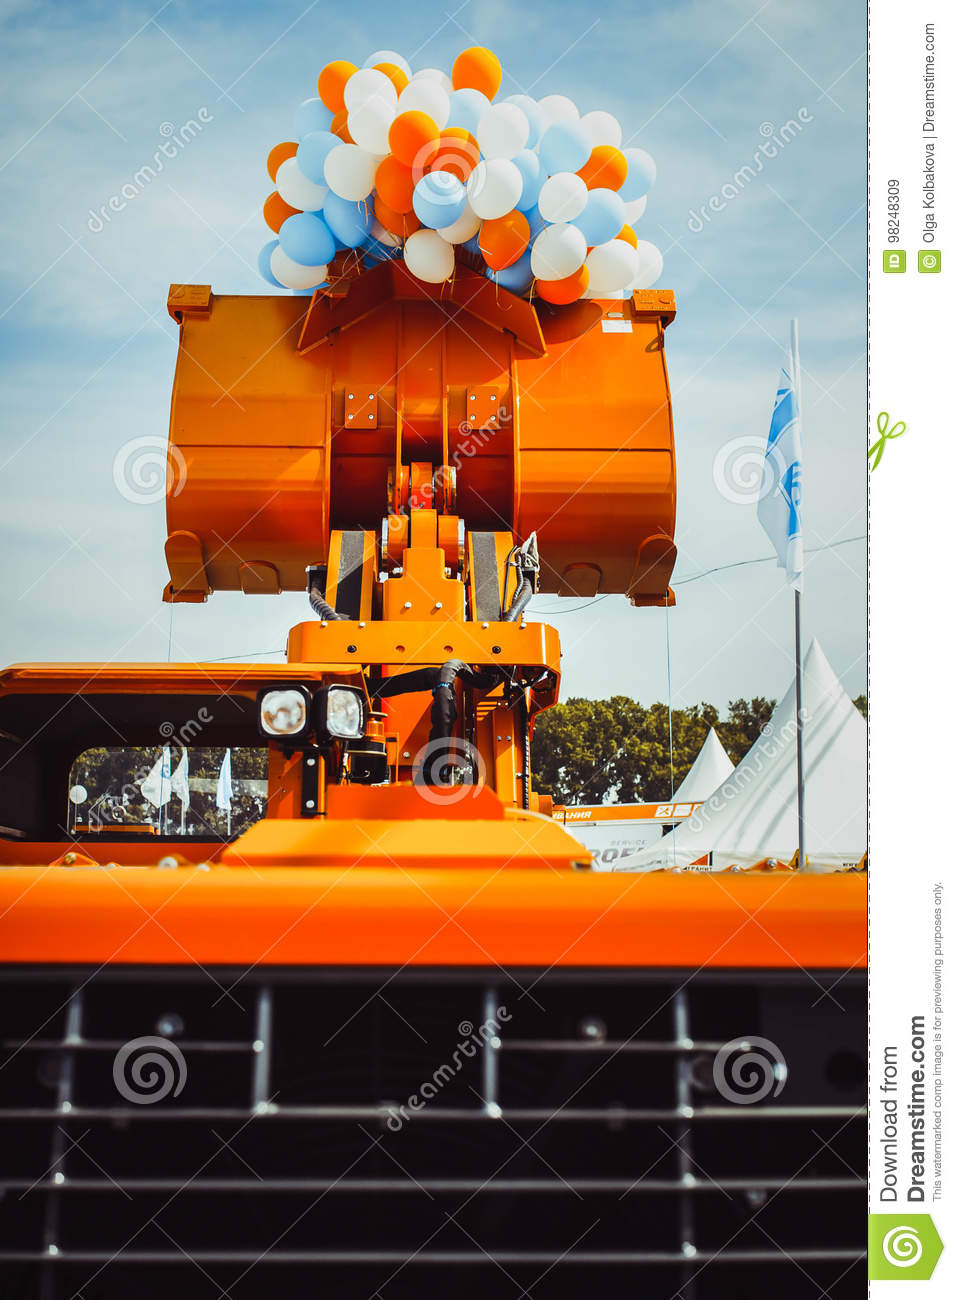 Caterpillar Tractor At The Exhibition Stock Image - Image of